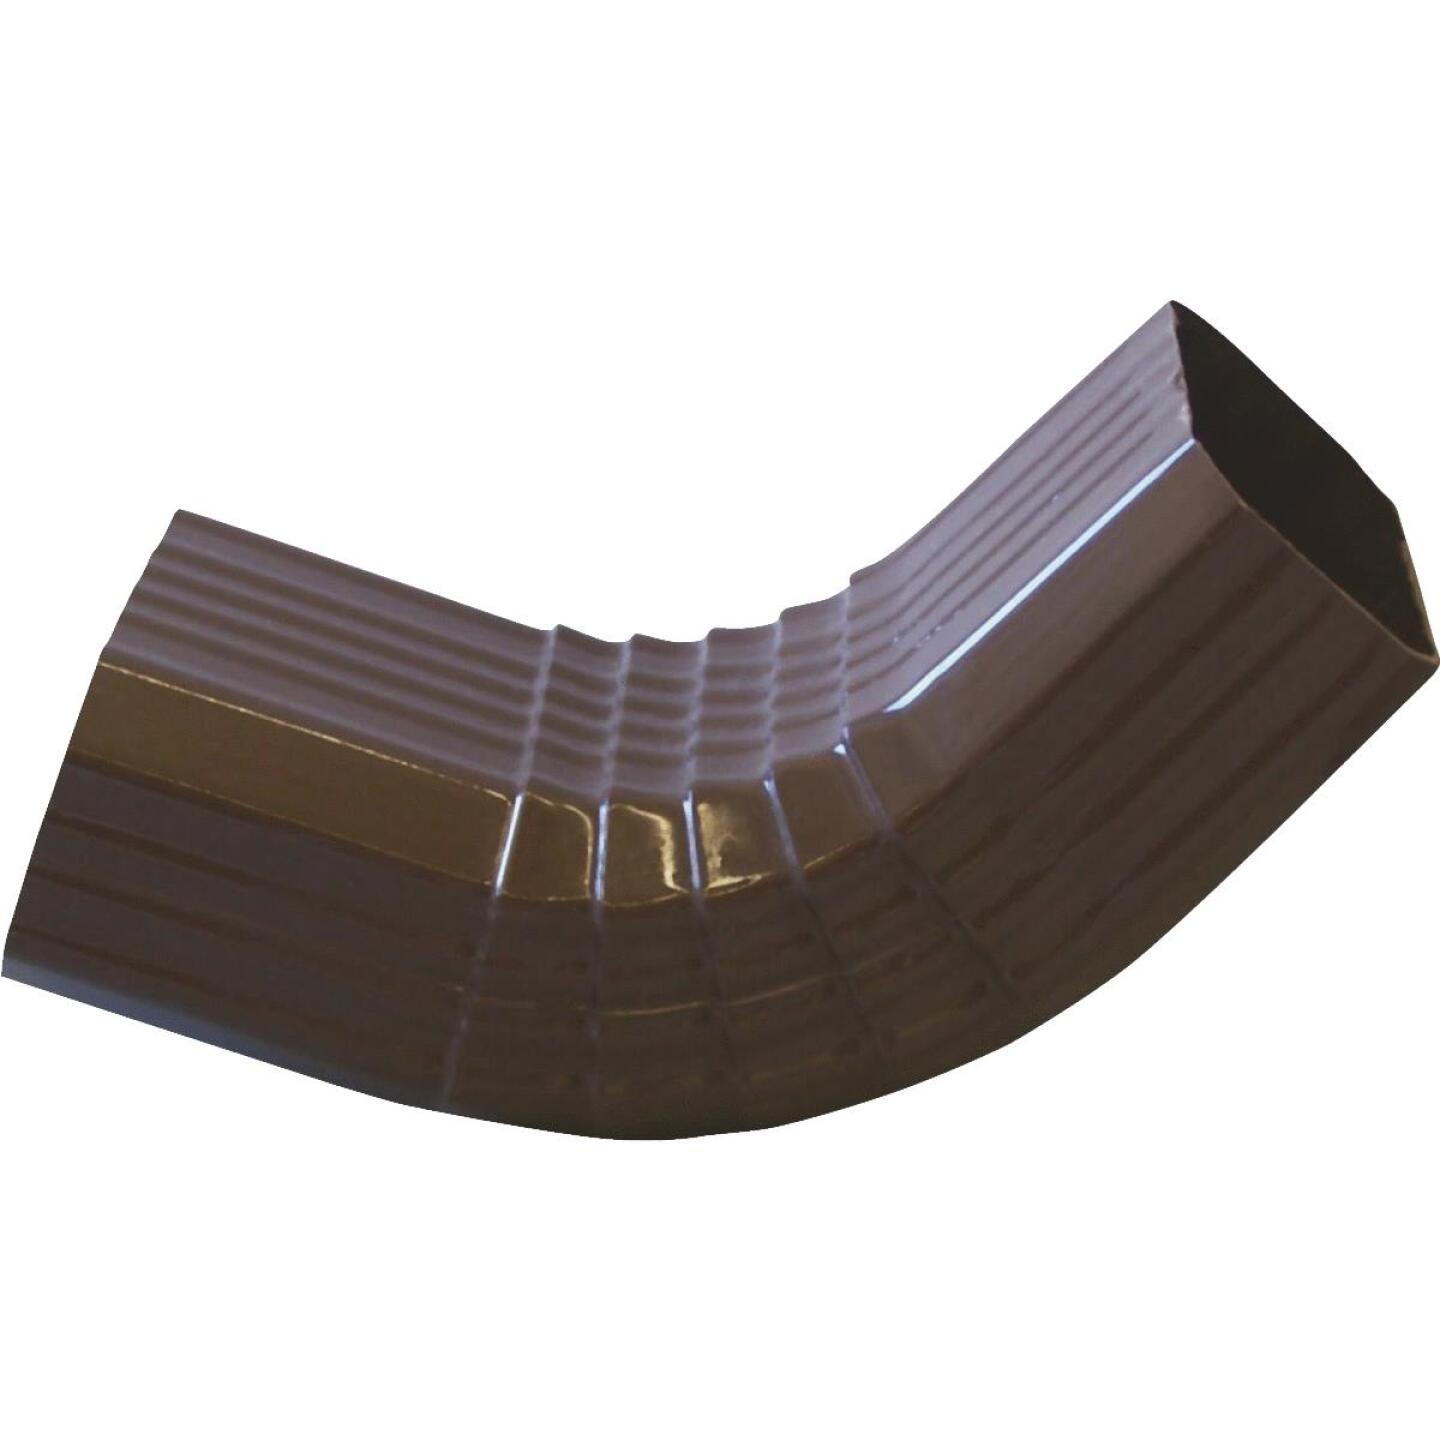 Repla K 2 x 3 In. Vinyl Brown Front Downspout Elbow Image 1